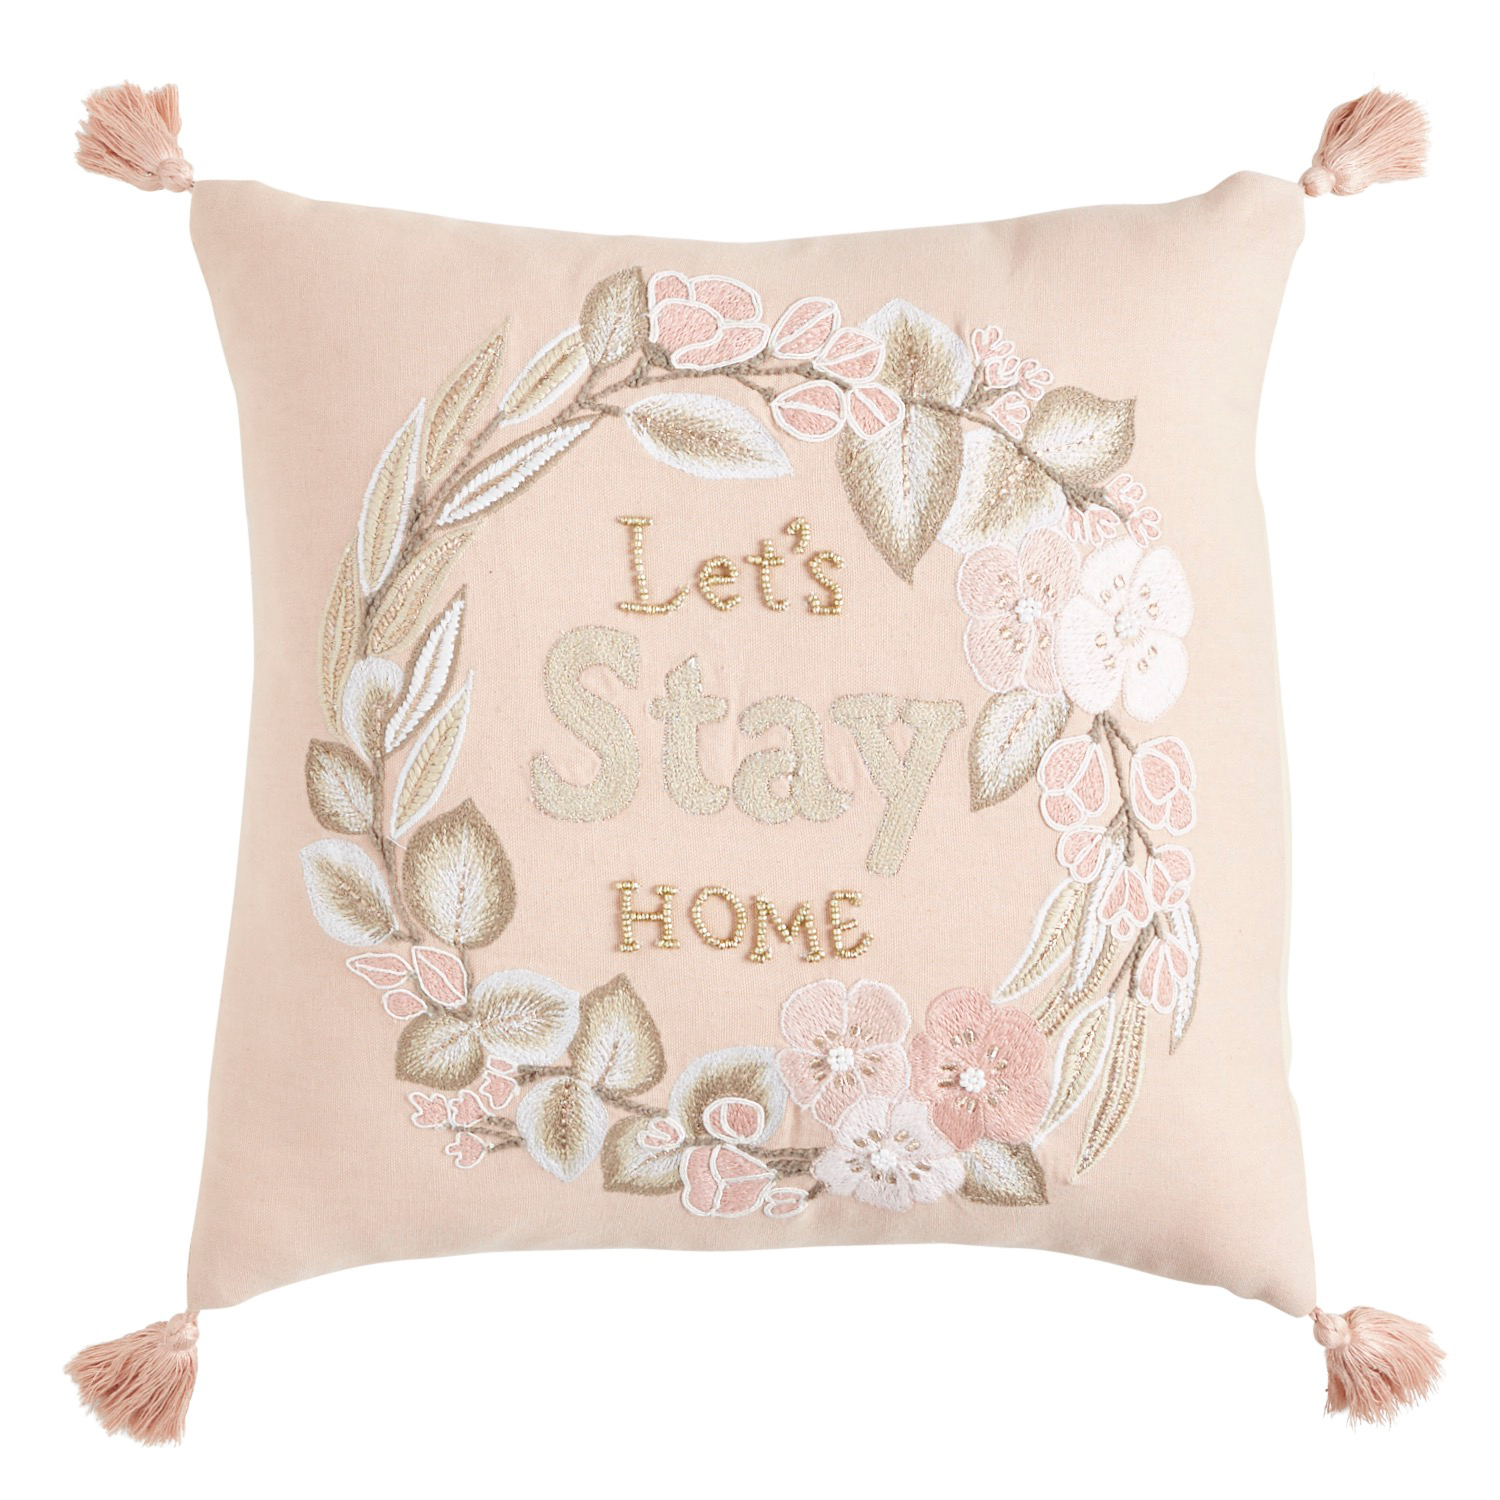 Let's Stay Home Blush Pillow with Tassels